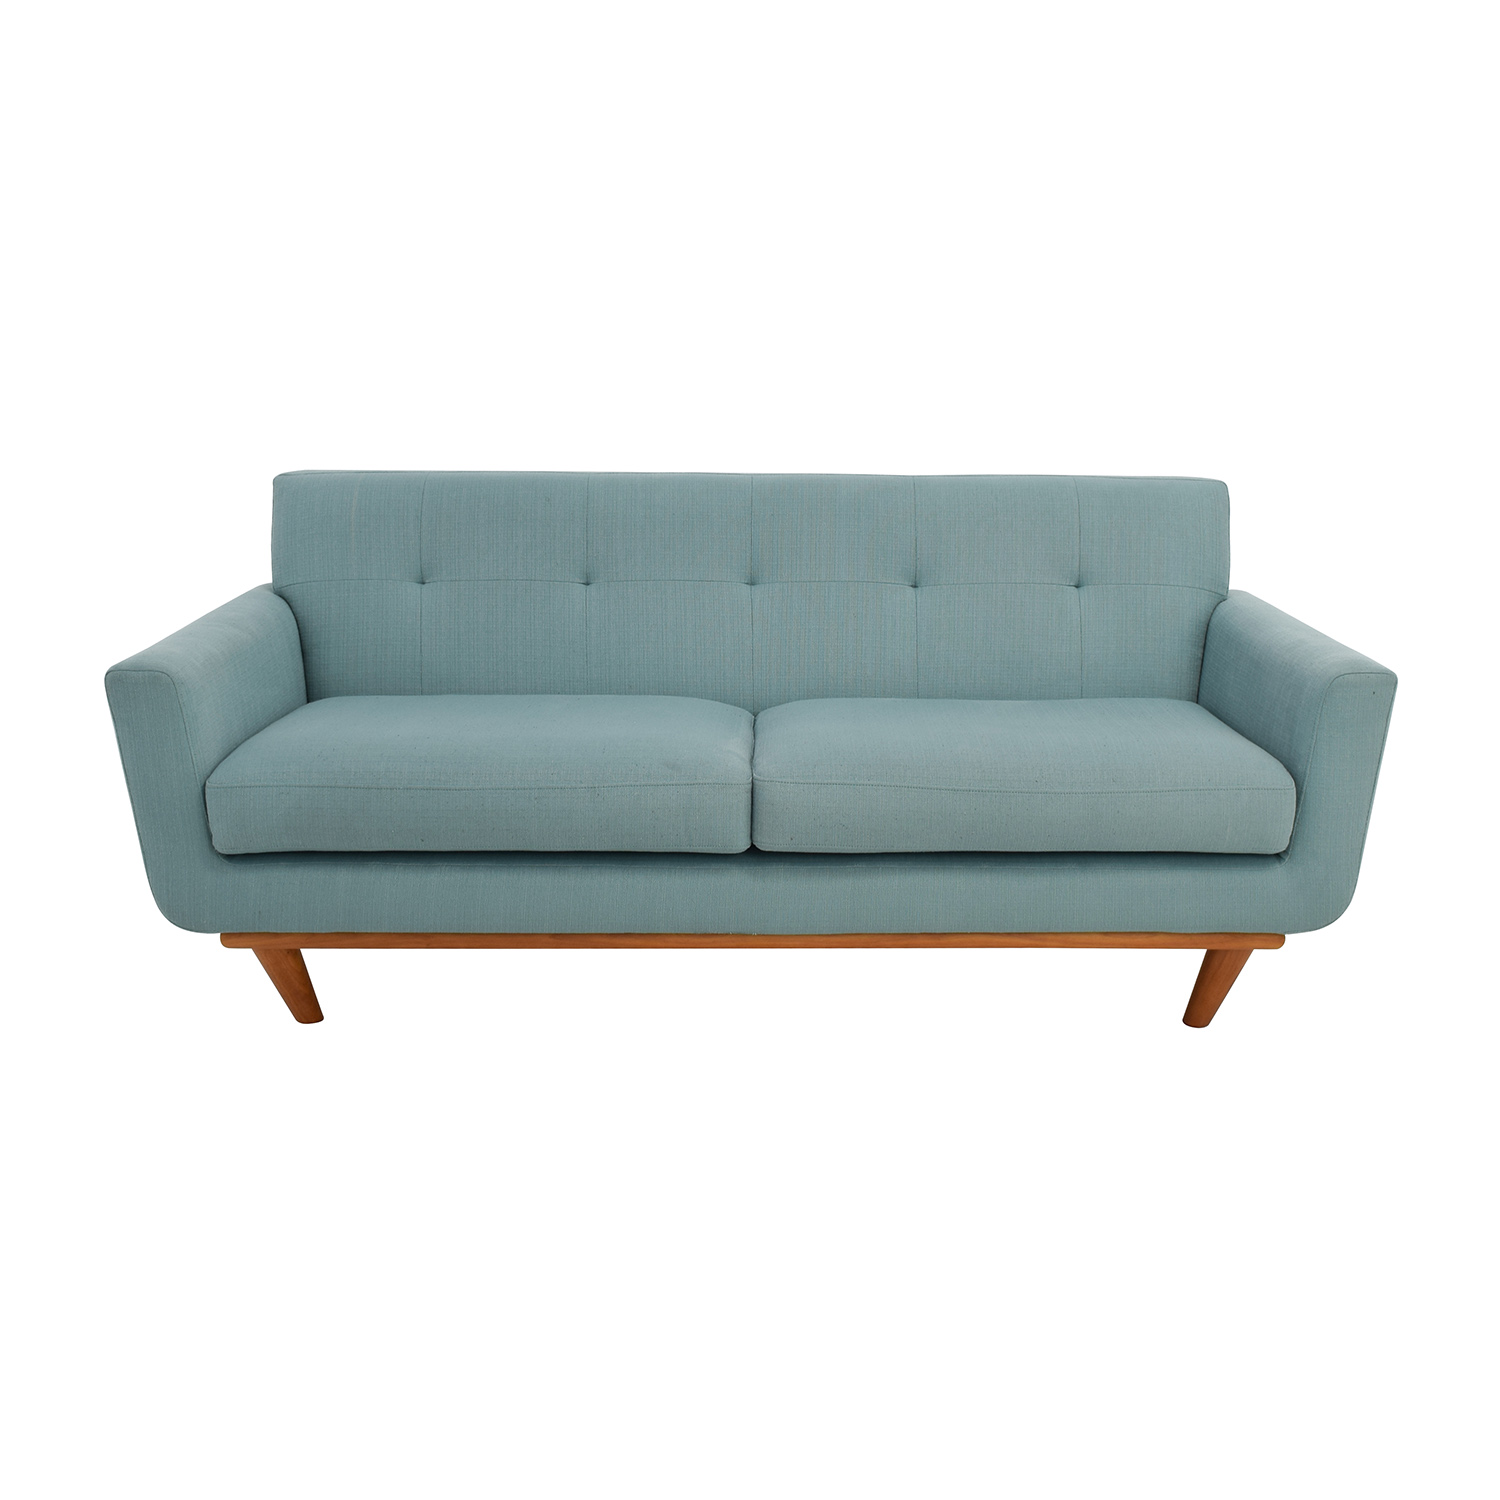 Midcentury Modern Tufted Light Teal Loveseat Sofa on sale